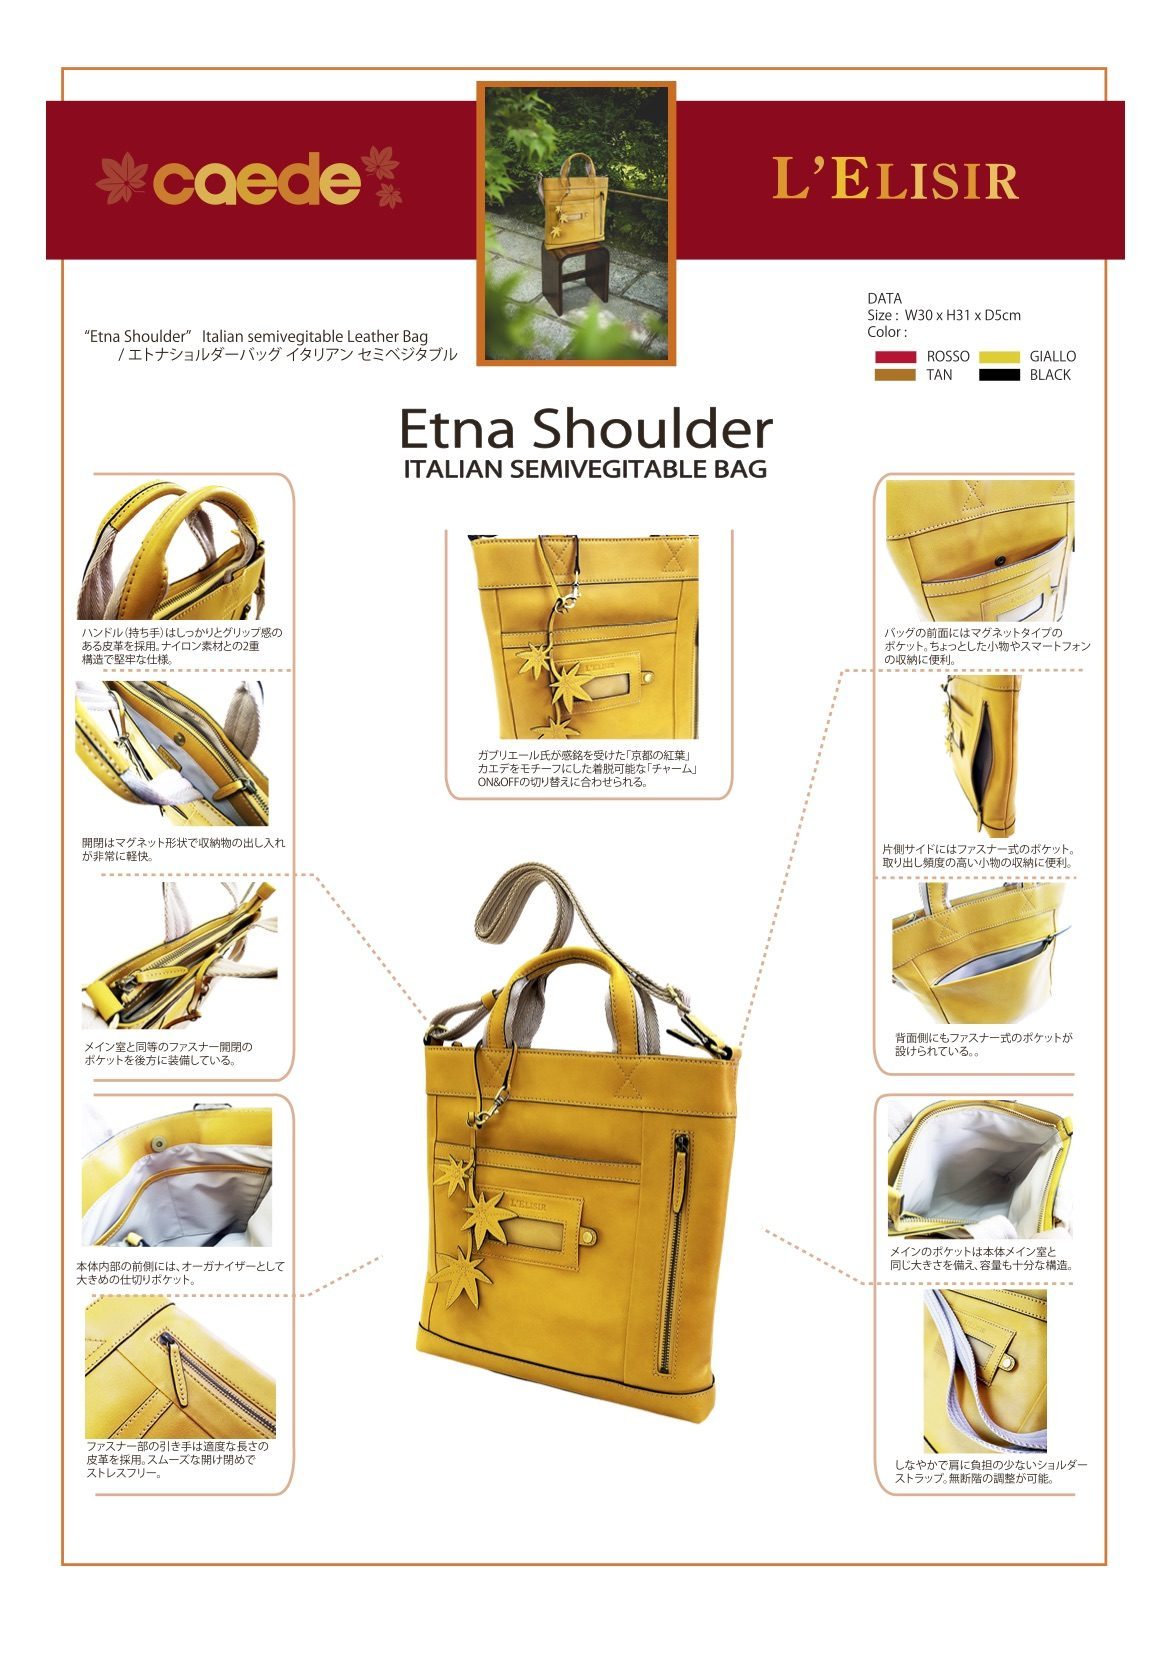 71272 etna shoulder